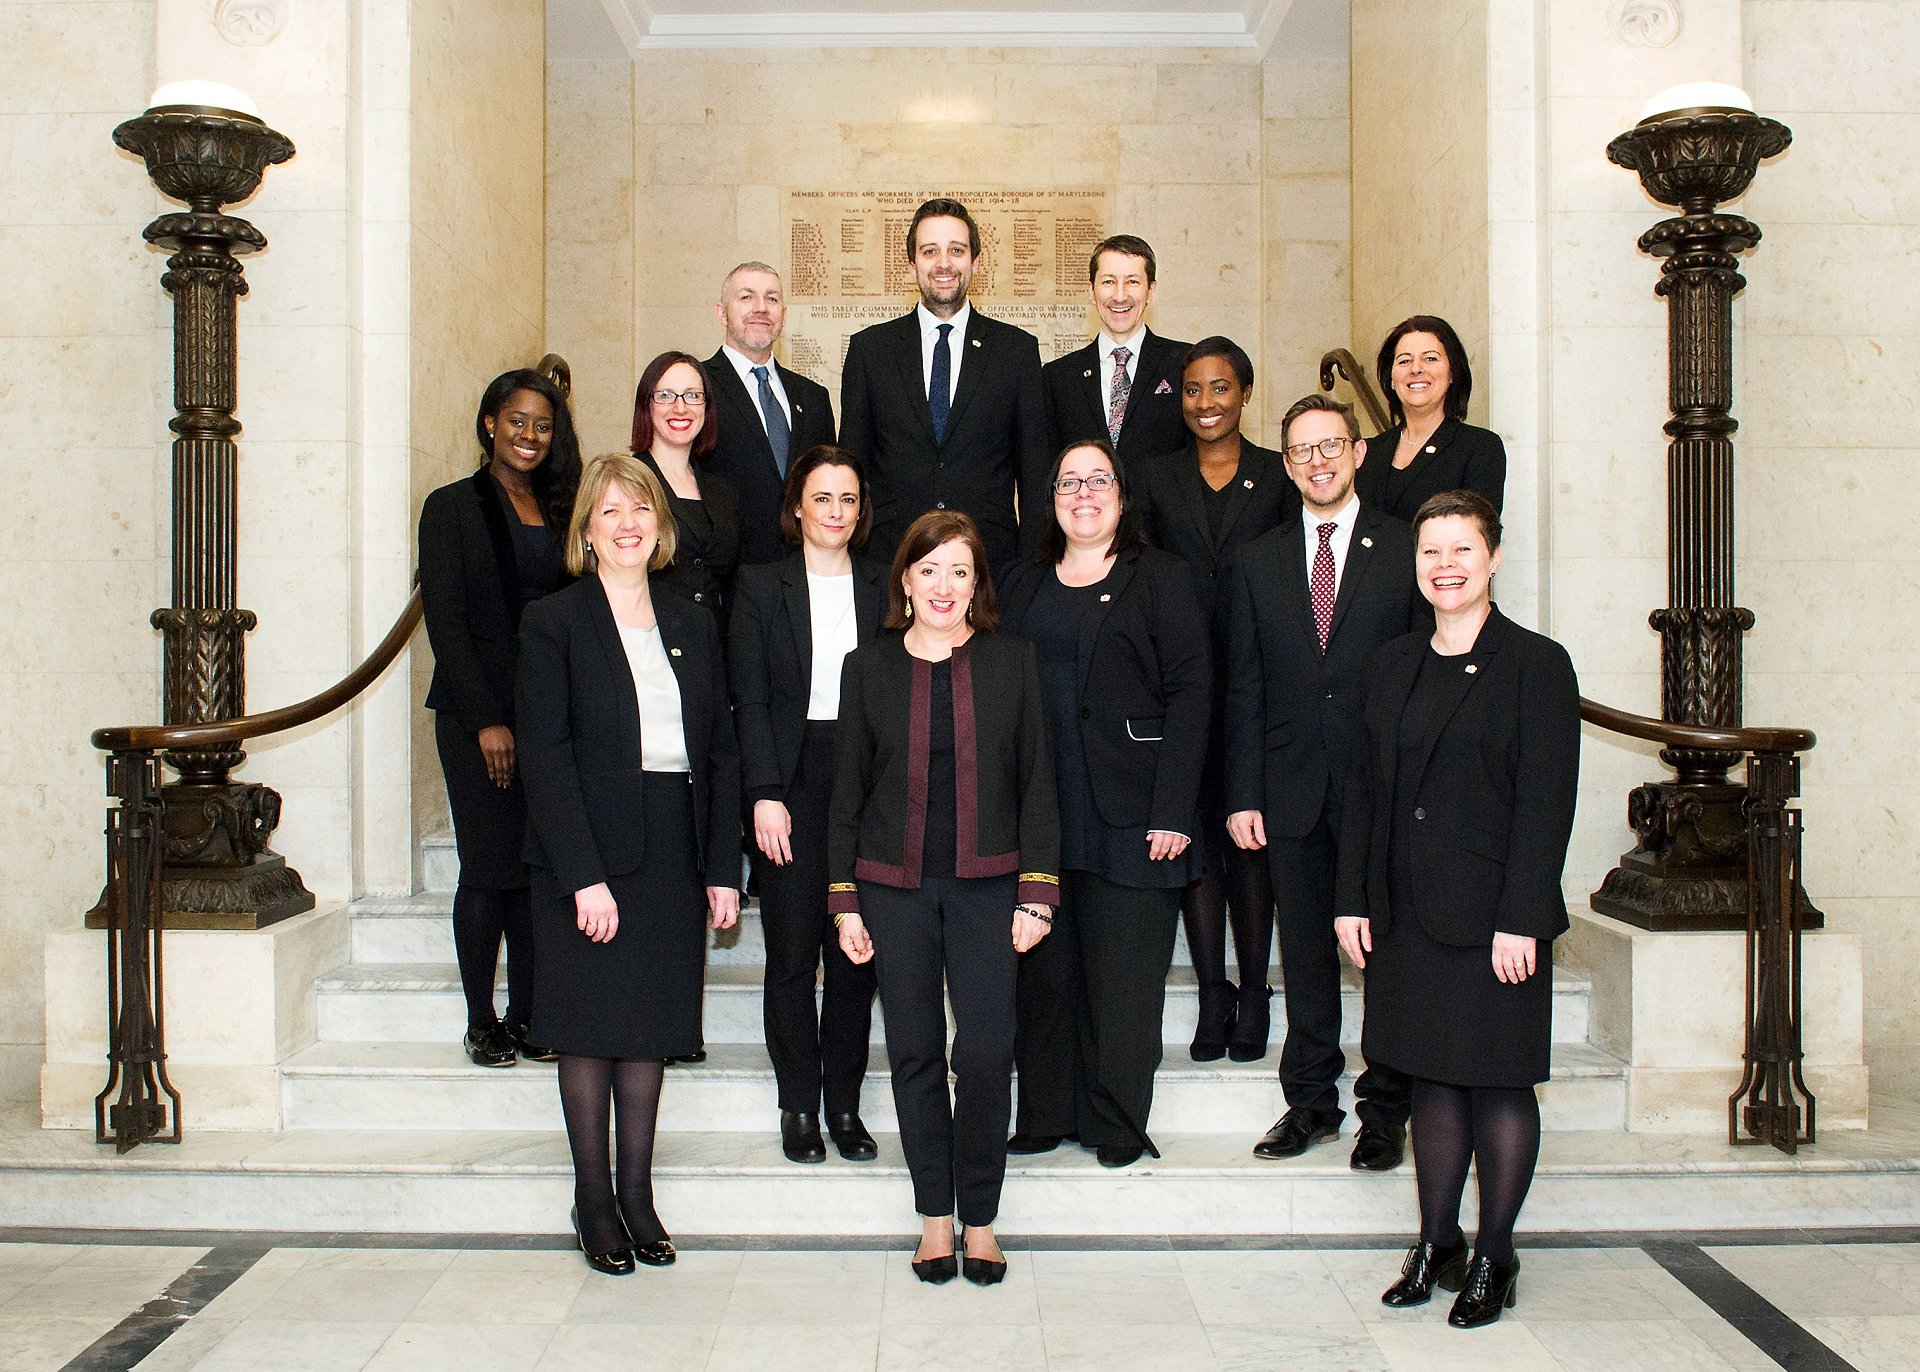 Westminster Register Office Registrars on the main staircase at Old Marylebone Town Hall by Emma Duggan Photography, a specialist register office wedding photographer